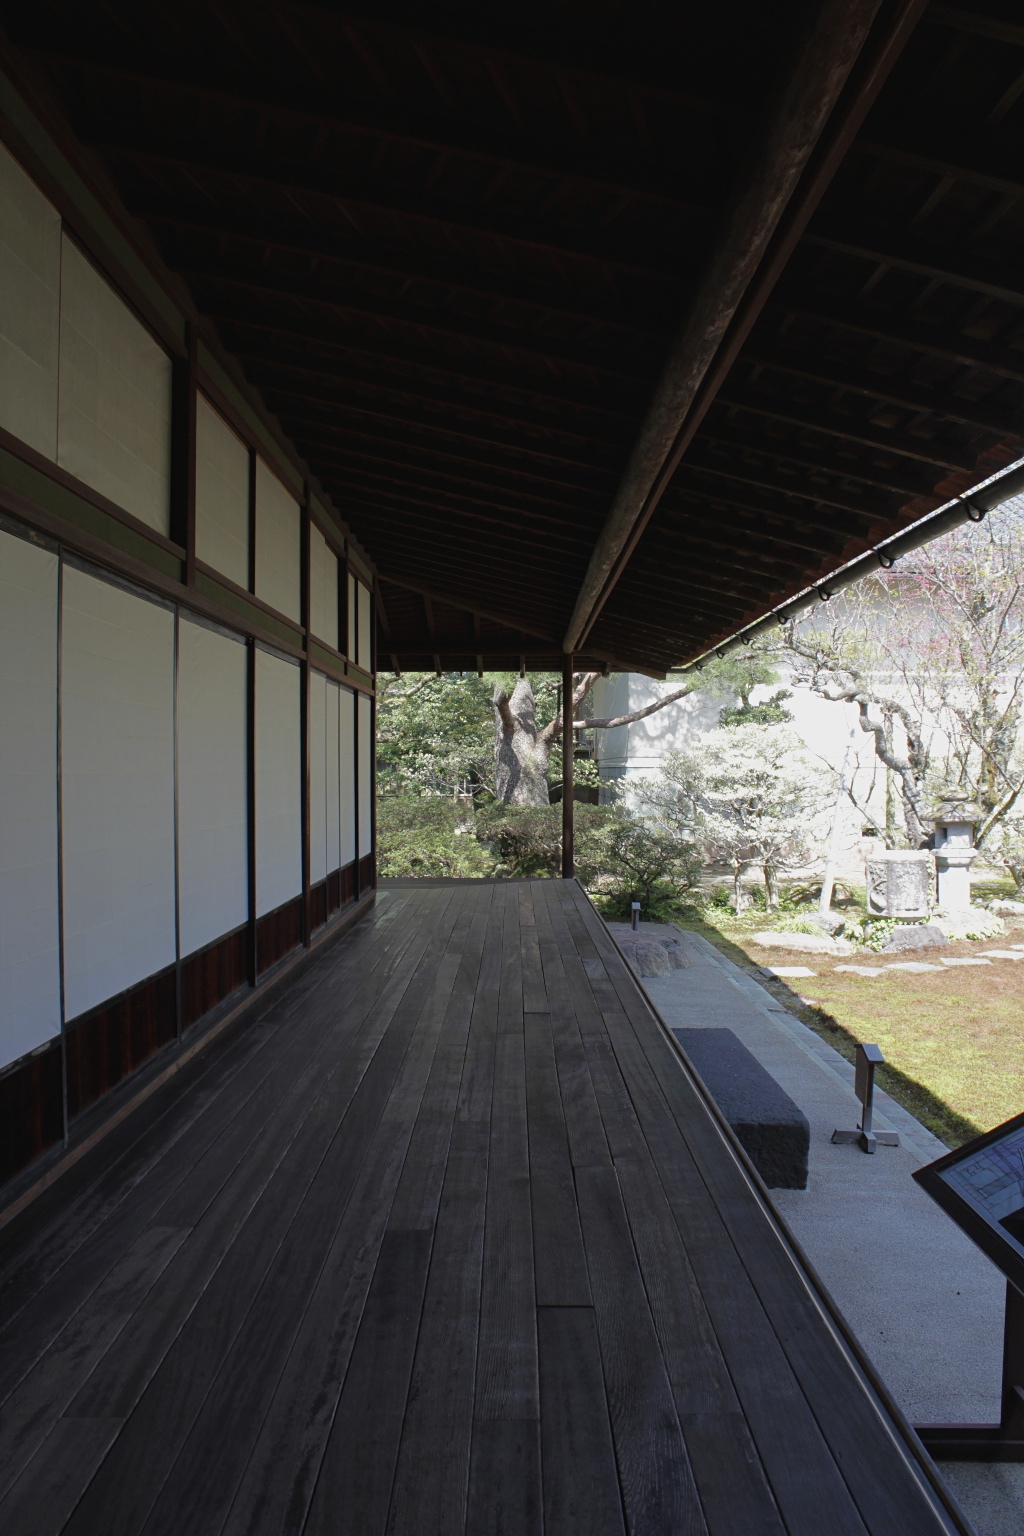 The veranda overlooking the exterior garden is of Meiji-era construction and is notable for it's lack of posts to support the bulk of its weight.